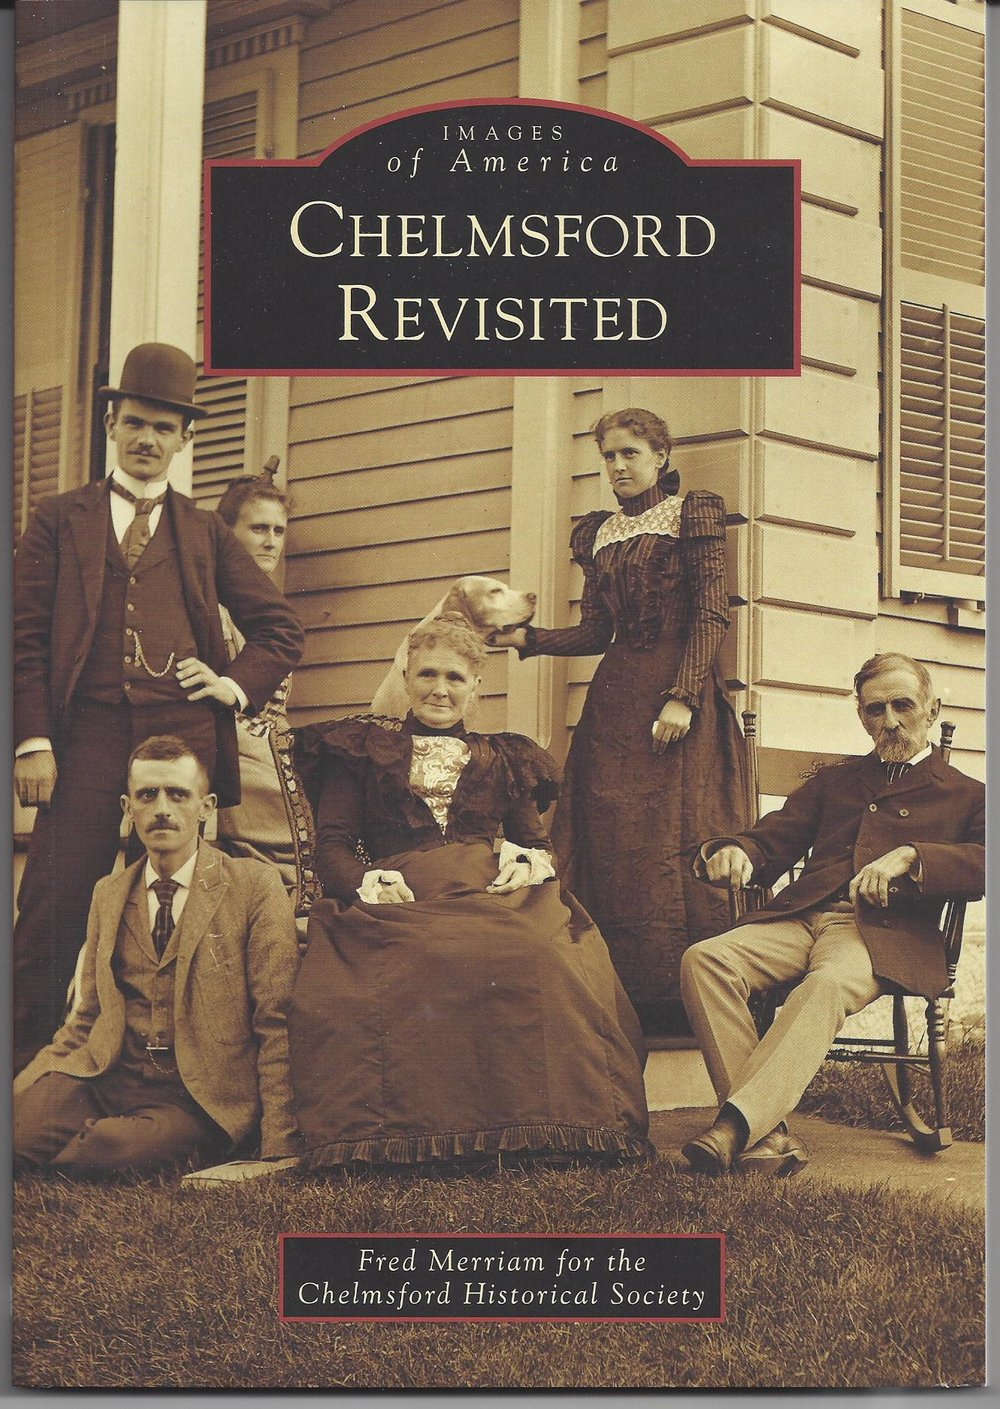 Chelmsford Revisited (Book), Merriam $22